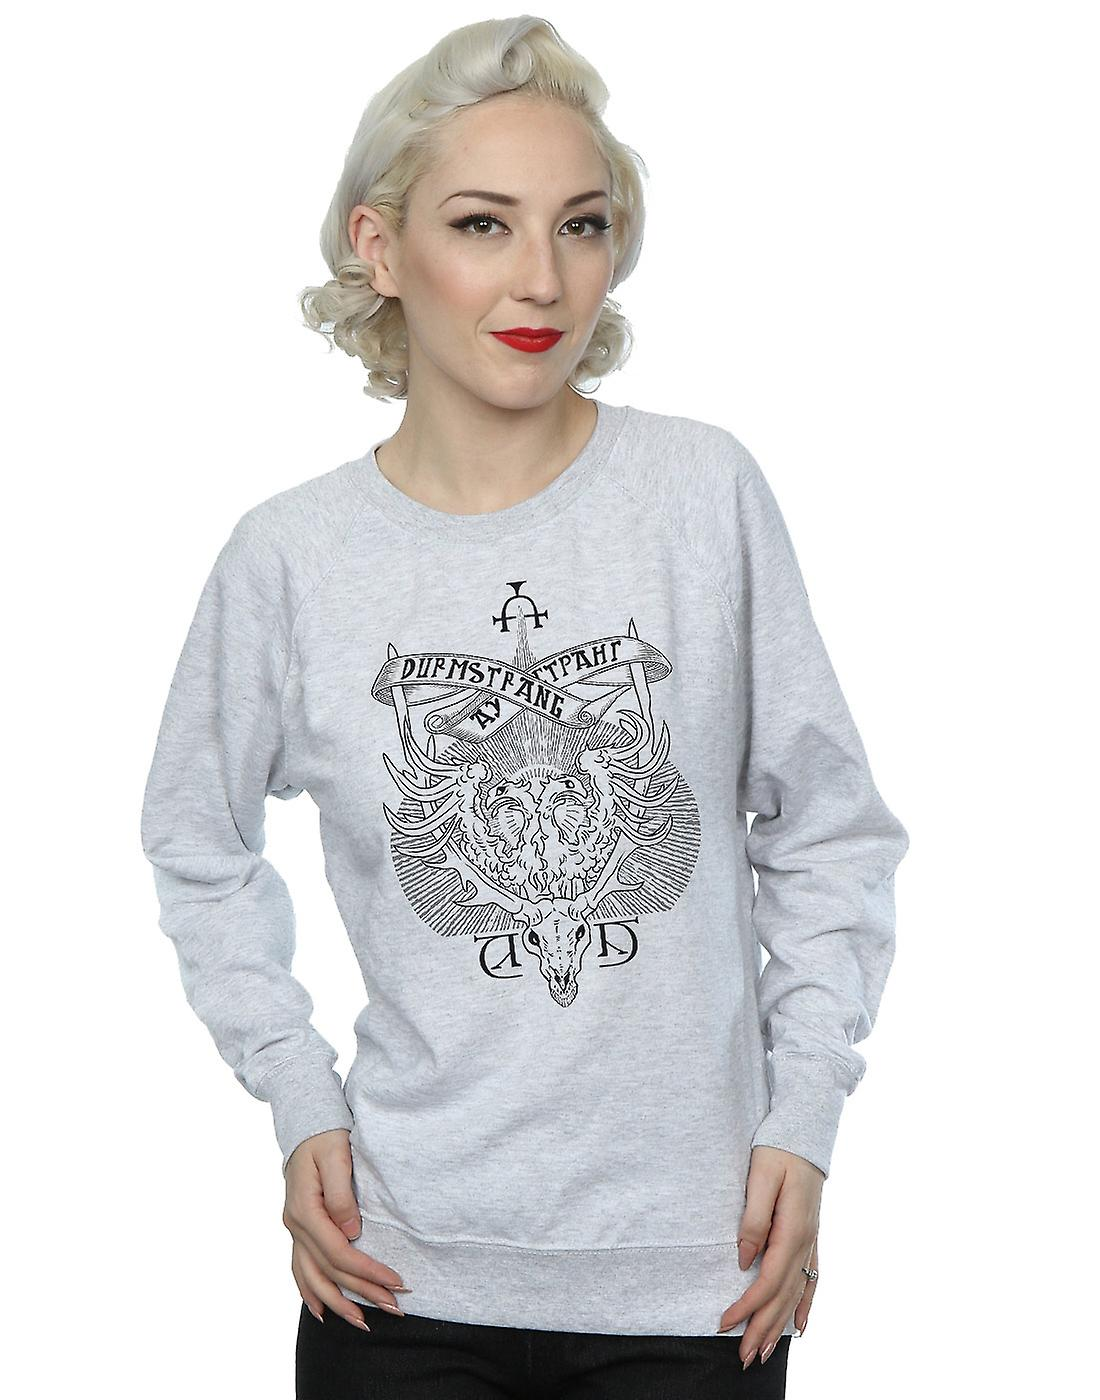 Harry Potter Women S Durmstrang Institute Crest Sweatshirt Fruugo Us Durmstrang once had the darkest reputation of all eleven wizarding schools, though this was never entirely merited. fruugo